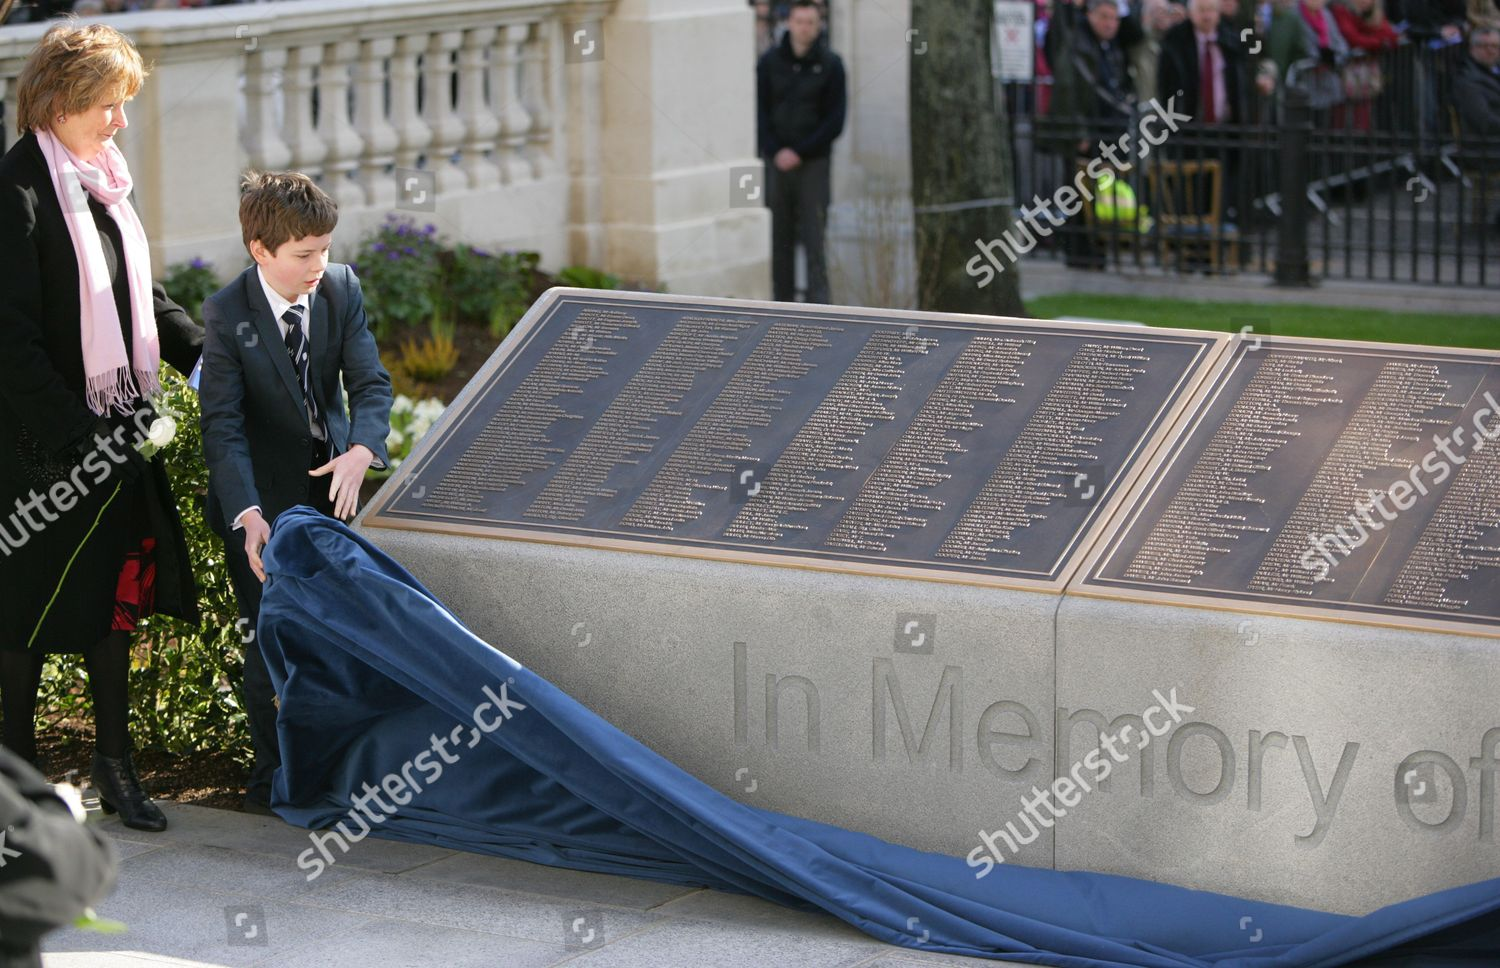 15 avril 2020 : 108 ans du naufrage 100th-anniversary-titanic-commemoration-service-and-unveiling-of-the-titanic-memorial-garden-belfast-northern-ireland-shutterstock-editorial-1695477g